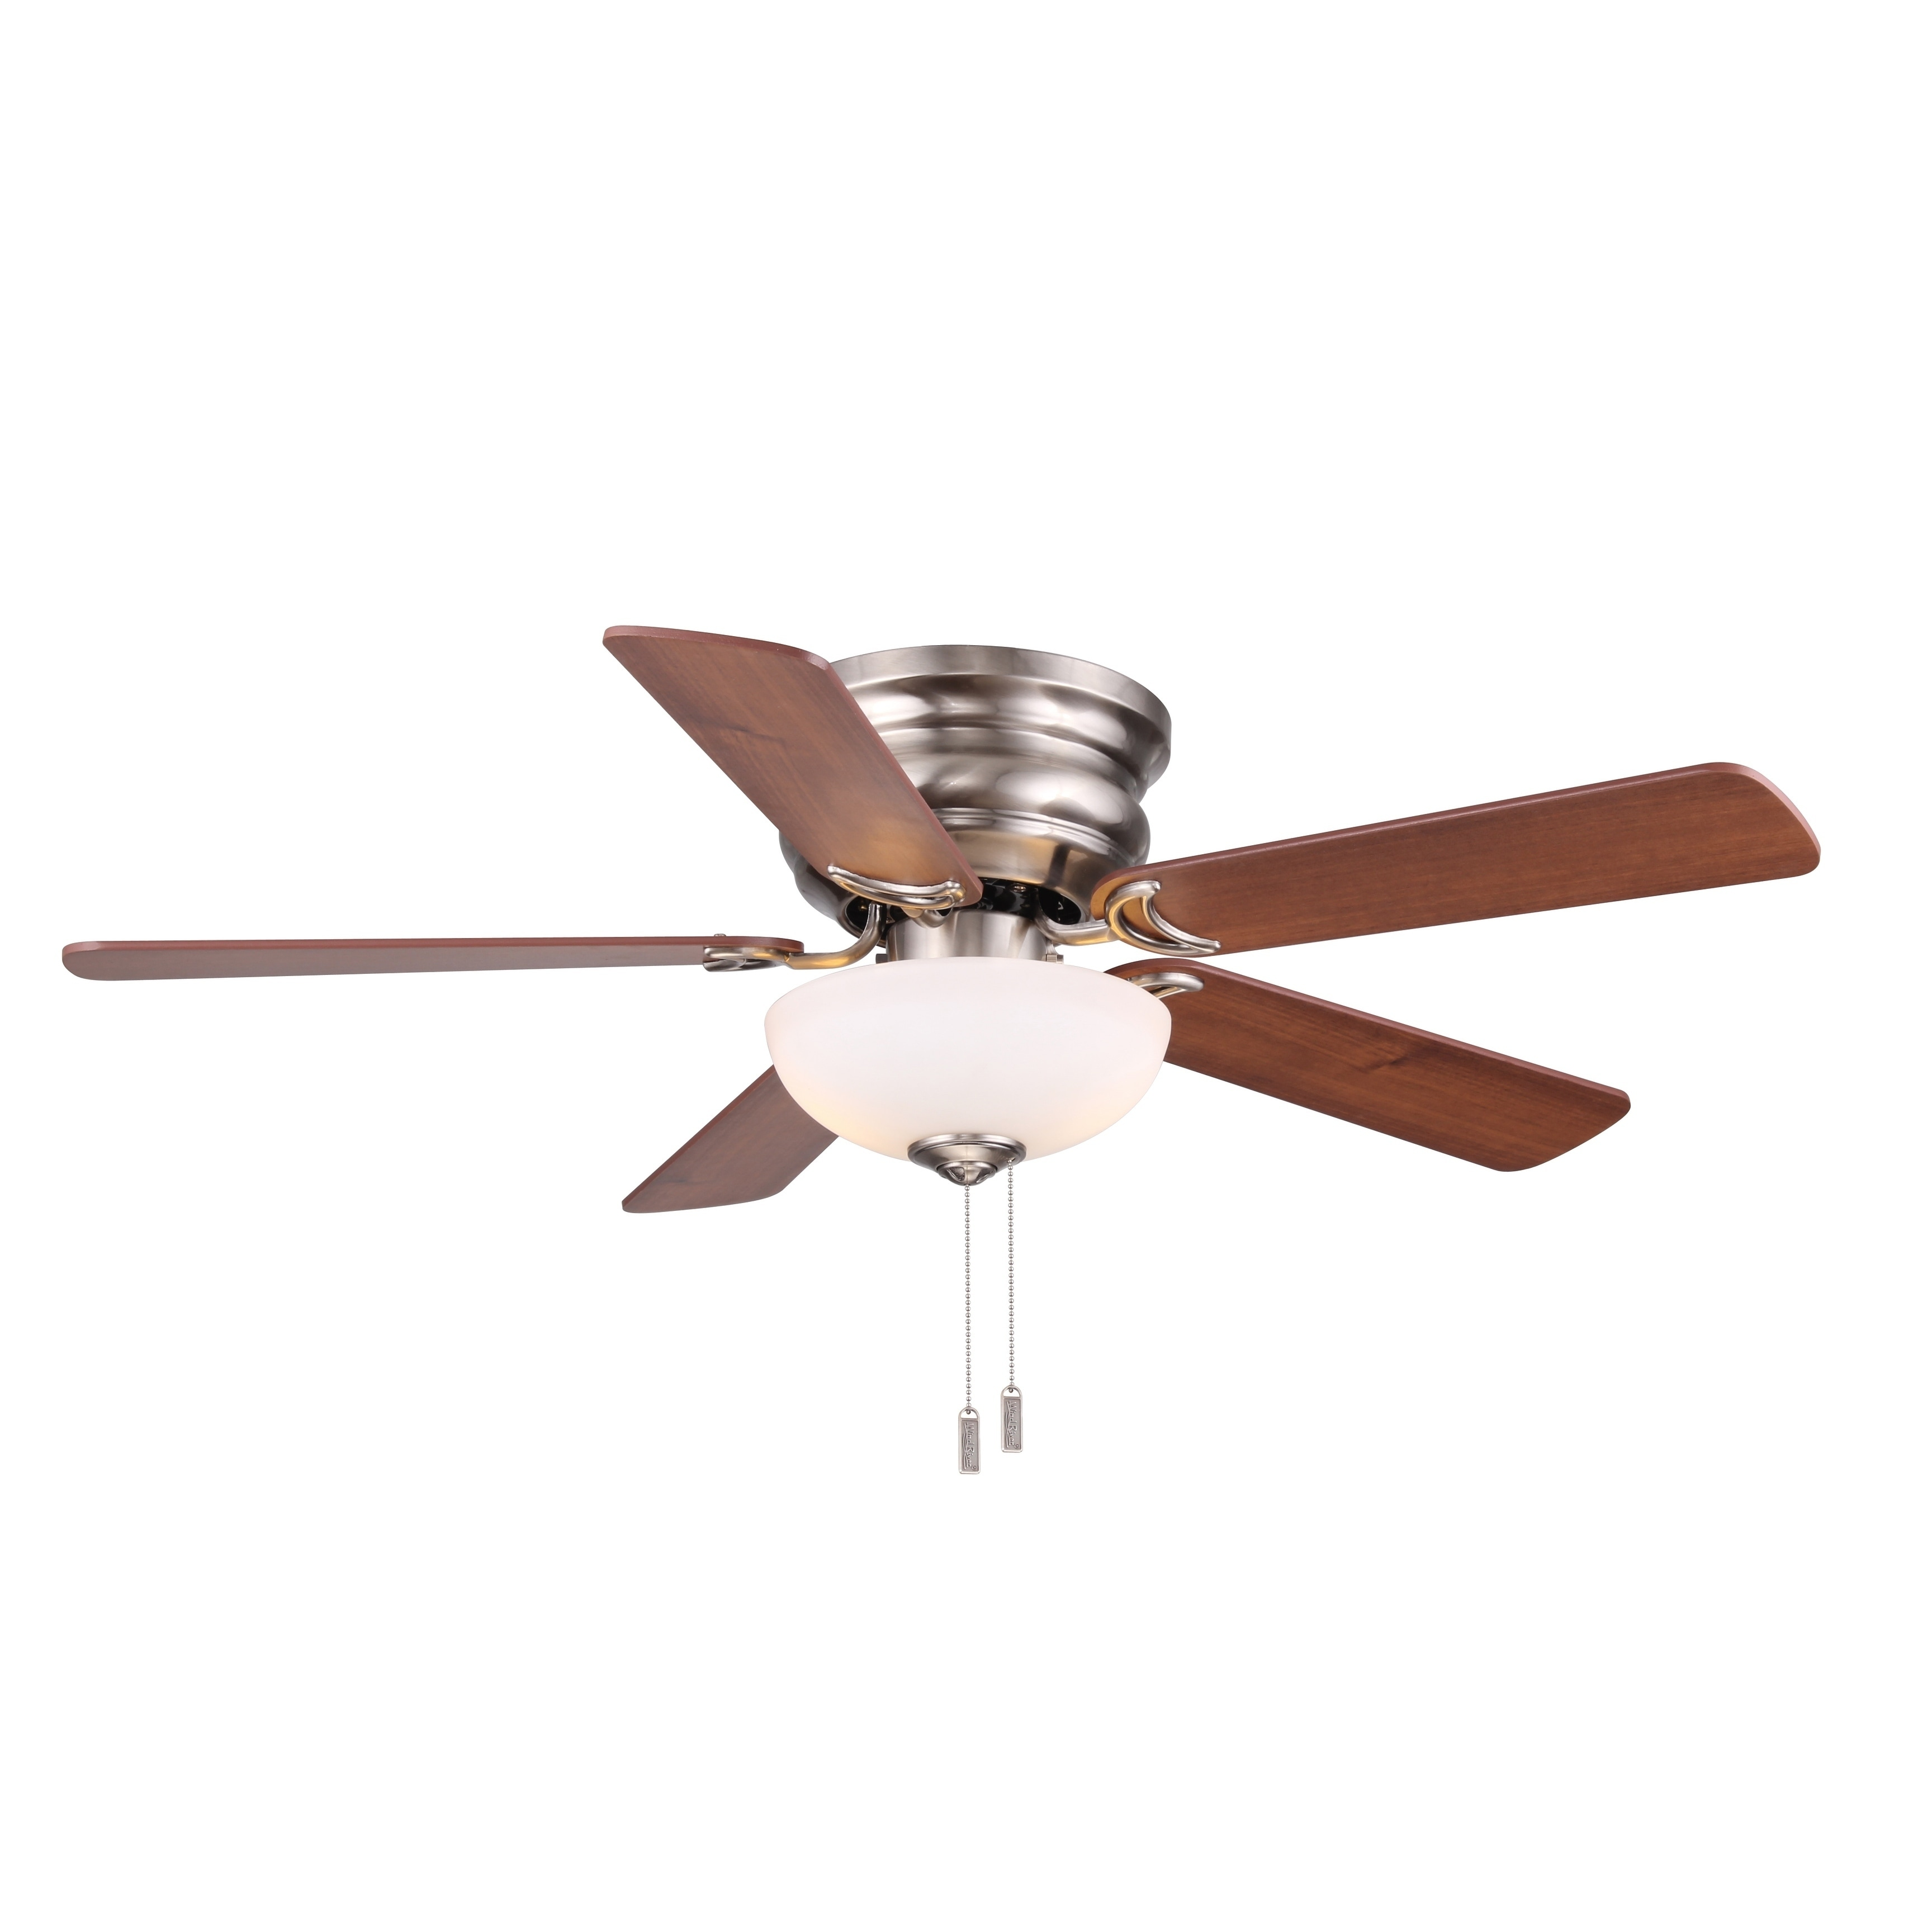 Frisco 44 Flush Mount Ceiling Fan Free Shipping Today 20717783